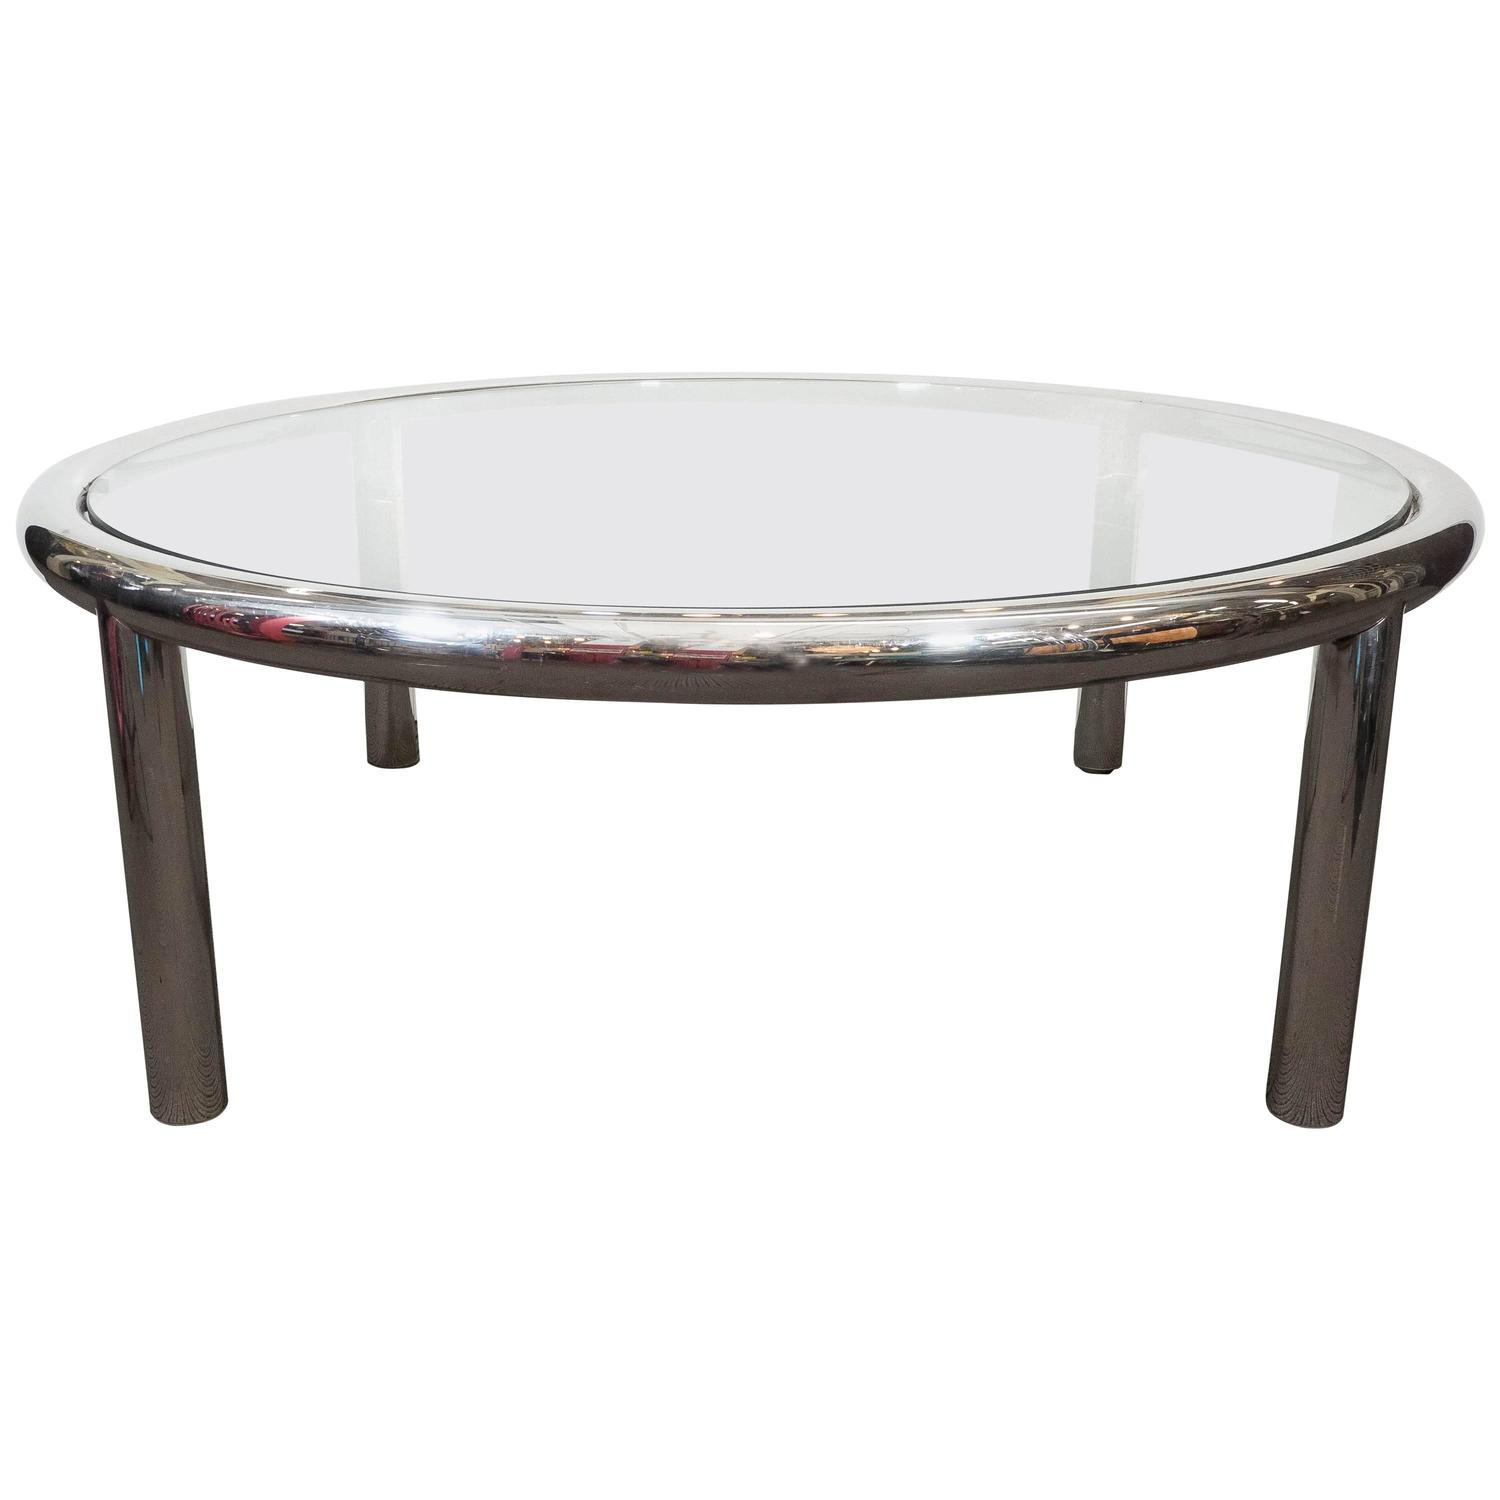 Tubular Chrome Glass Top Round Coffee Table For Sale At 1stdibs